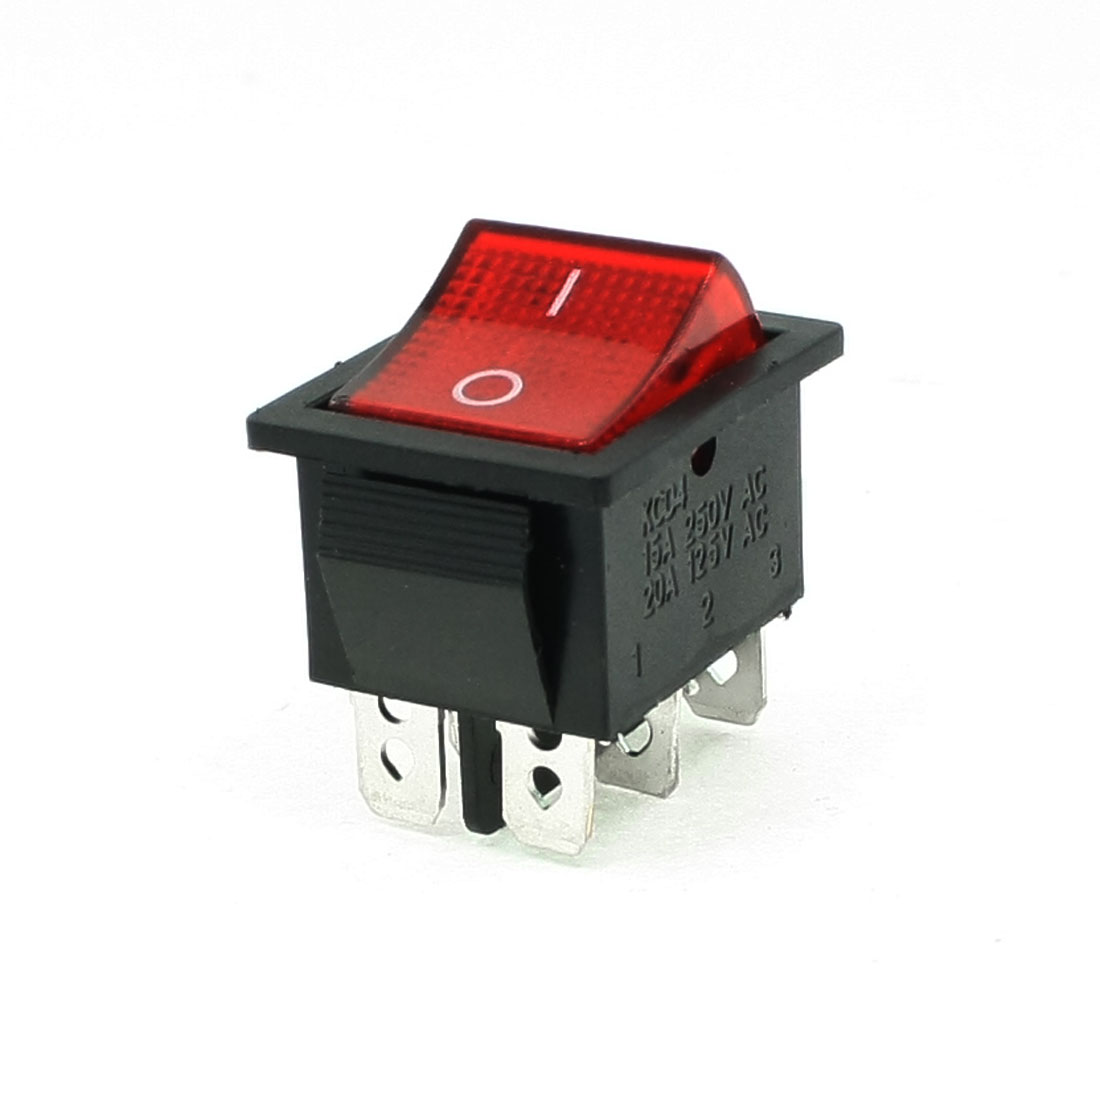 5 Pcs Red AC 15A/250V 20A/125V DPDT On-On 6 Pin Boat Rocker Switches